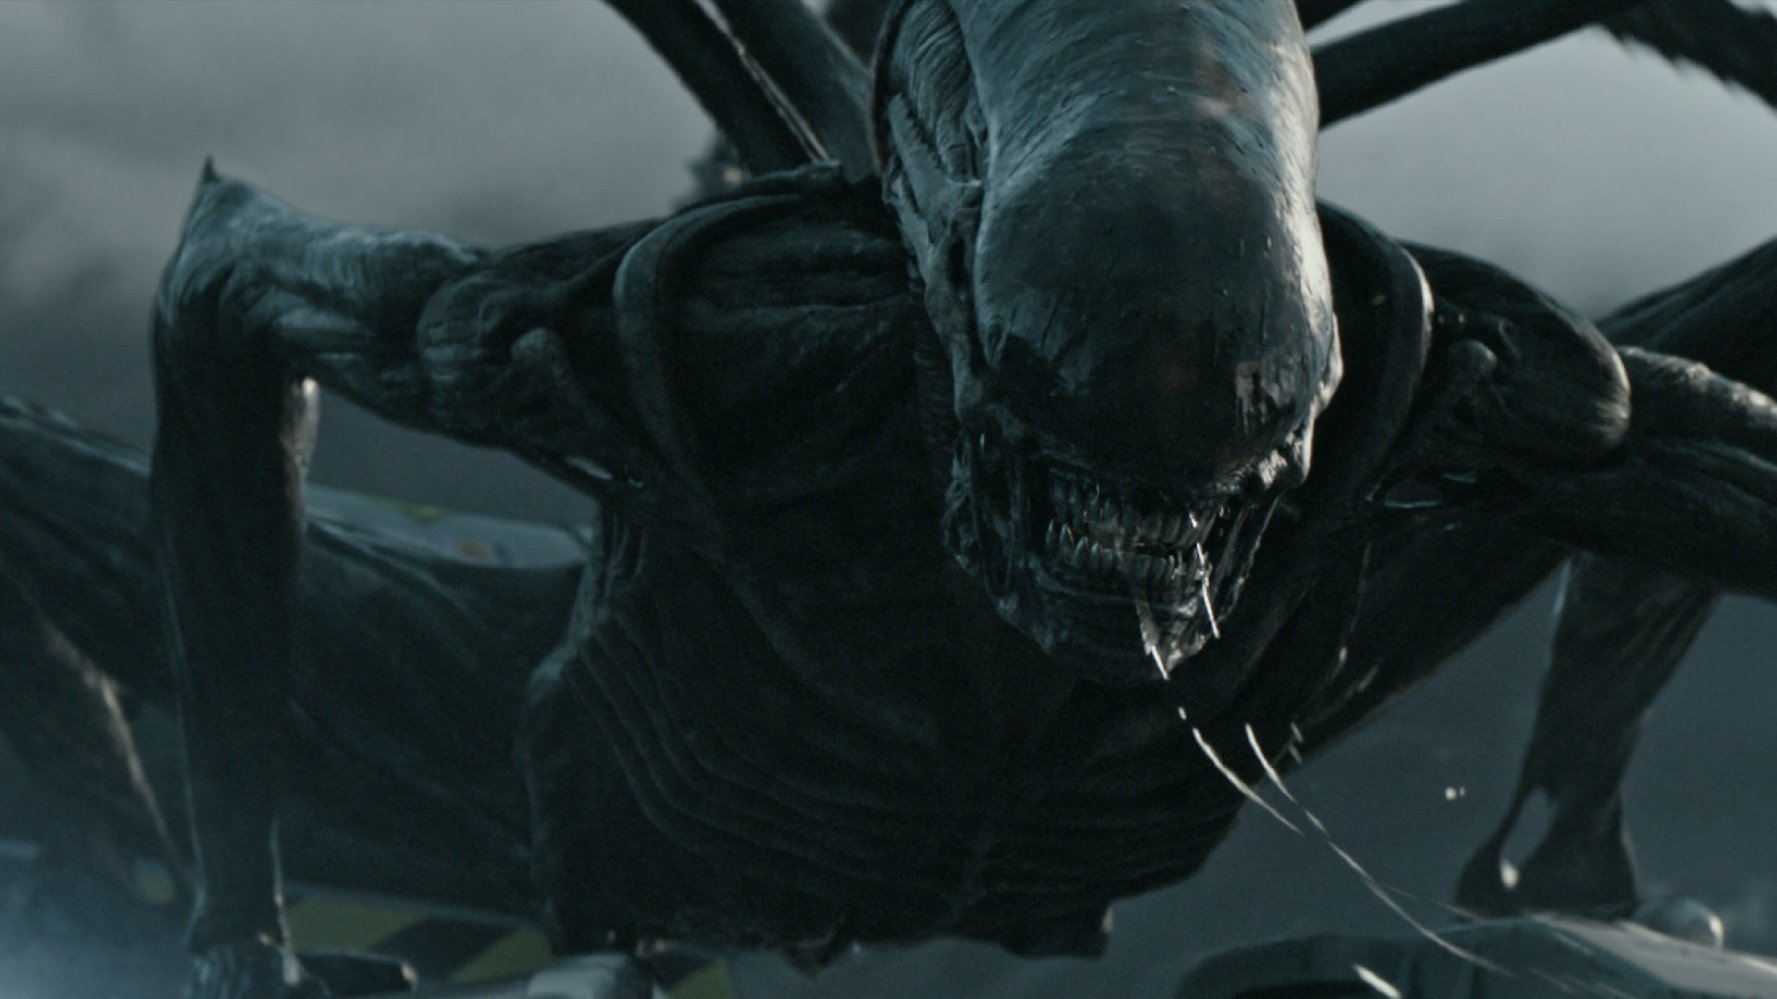 Alien: Covenant brings in $4.2 million at Thursday box office